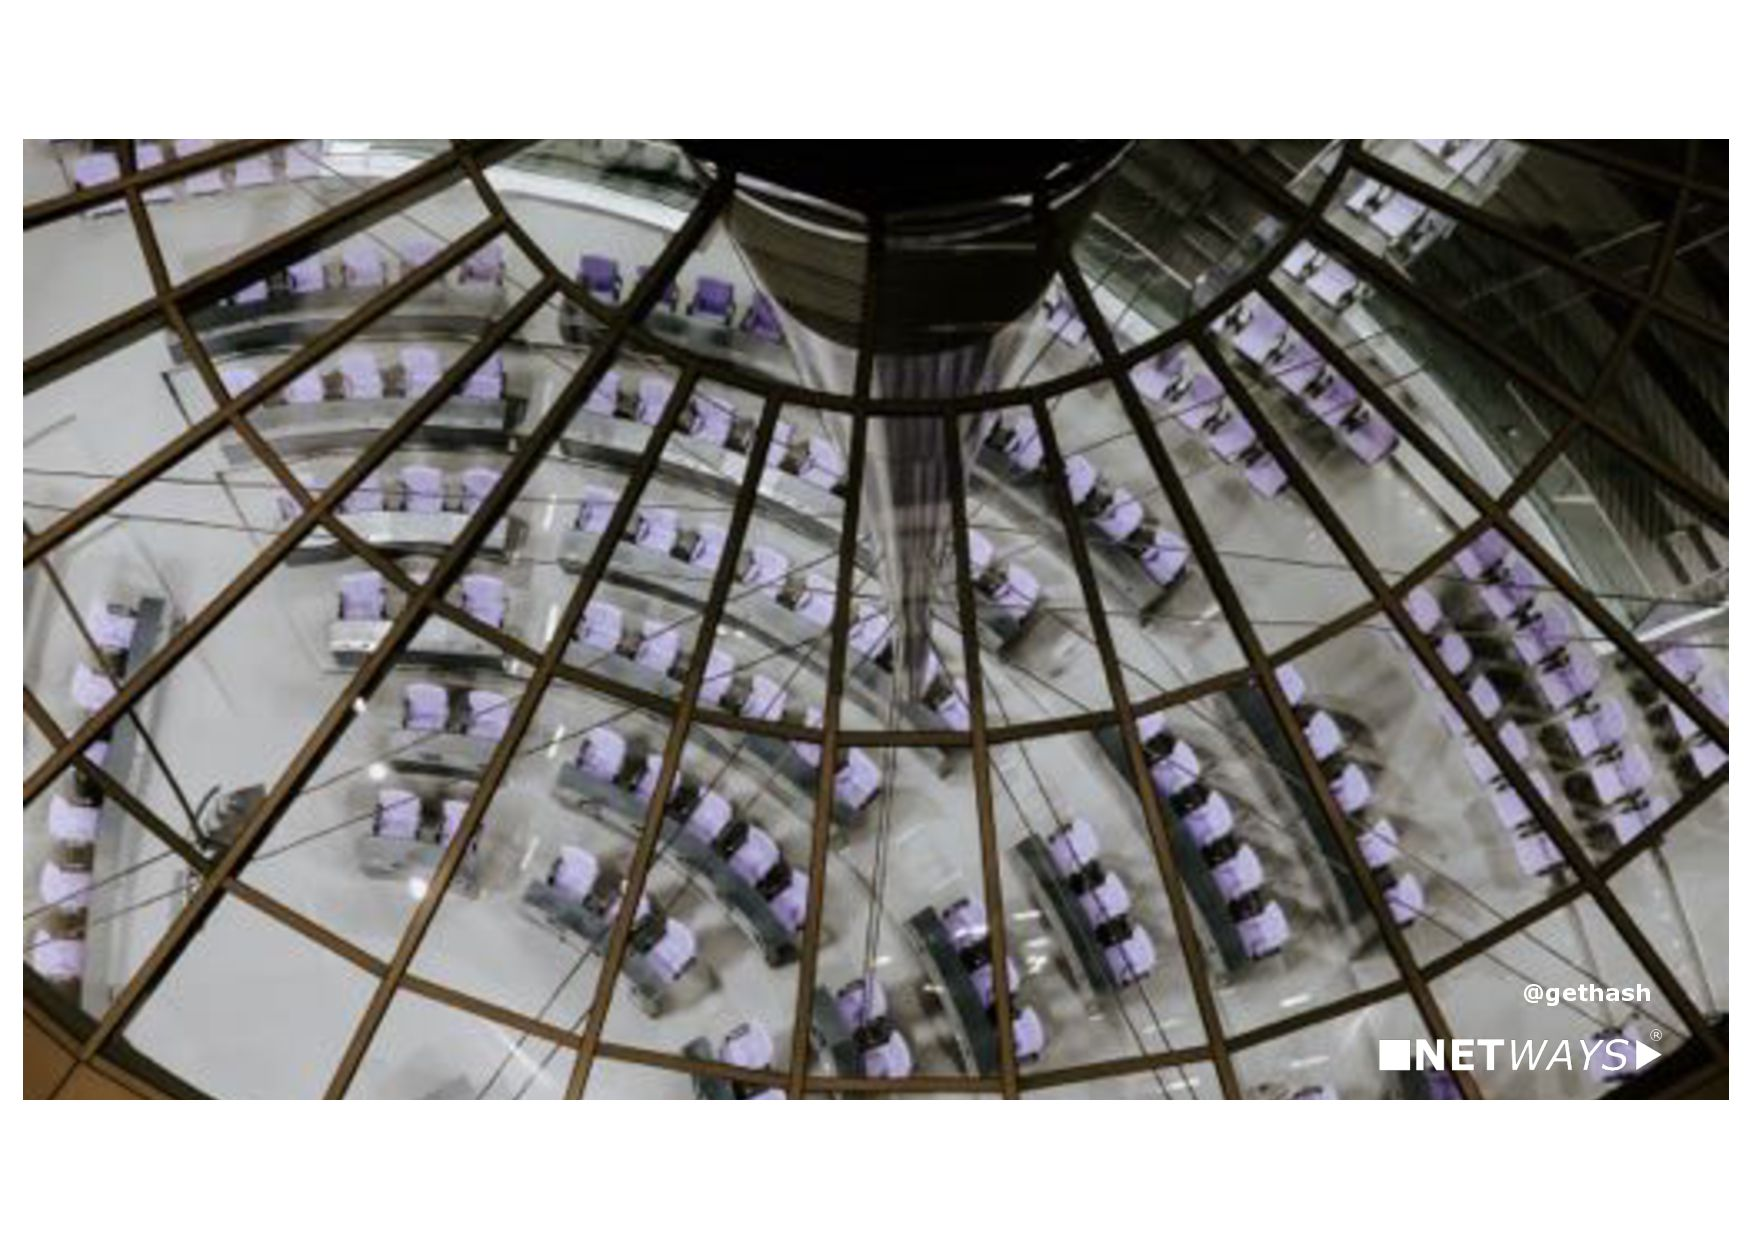 Support Variety